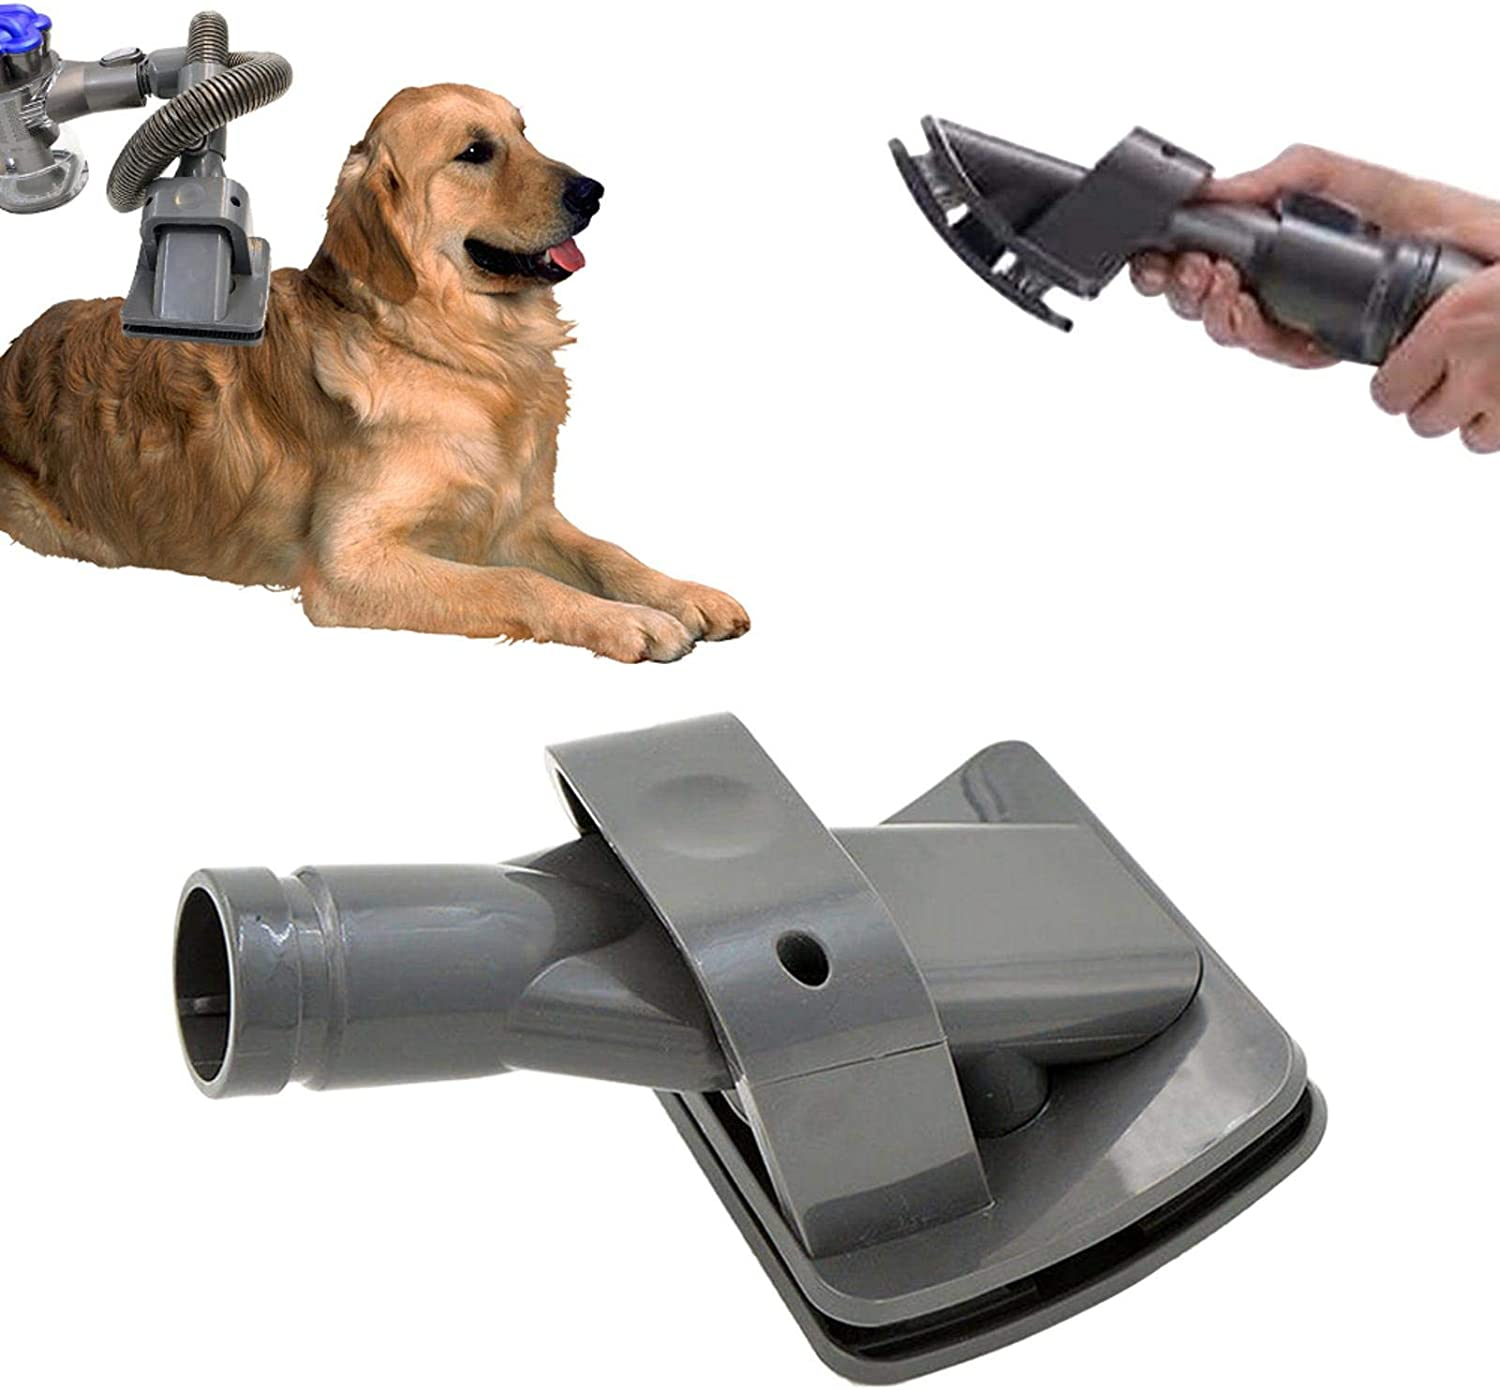 tiezhi Pet Grooming Spring new work Tool for Groom Attac Dyson ...